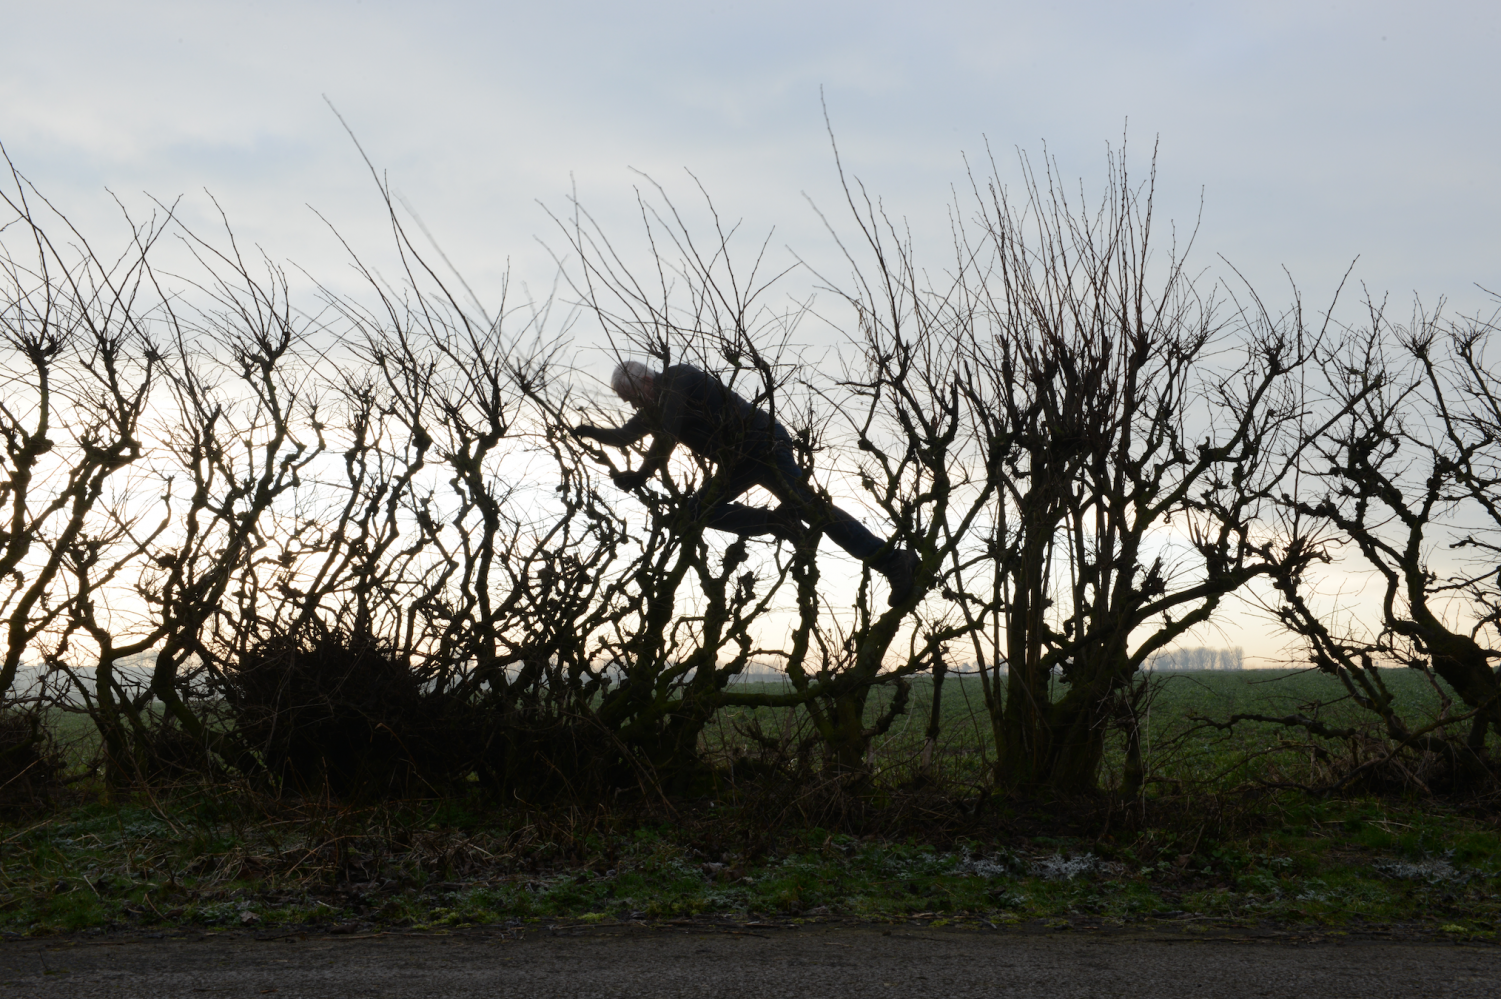 Andy Goldsworthy in LEANING INTO THE WIND, a Magnolia Pictures release.